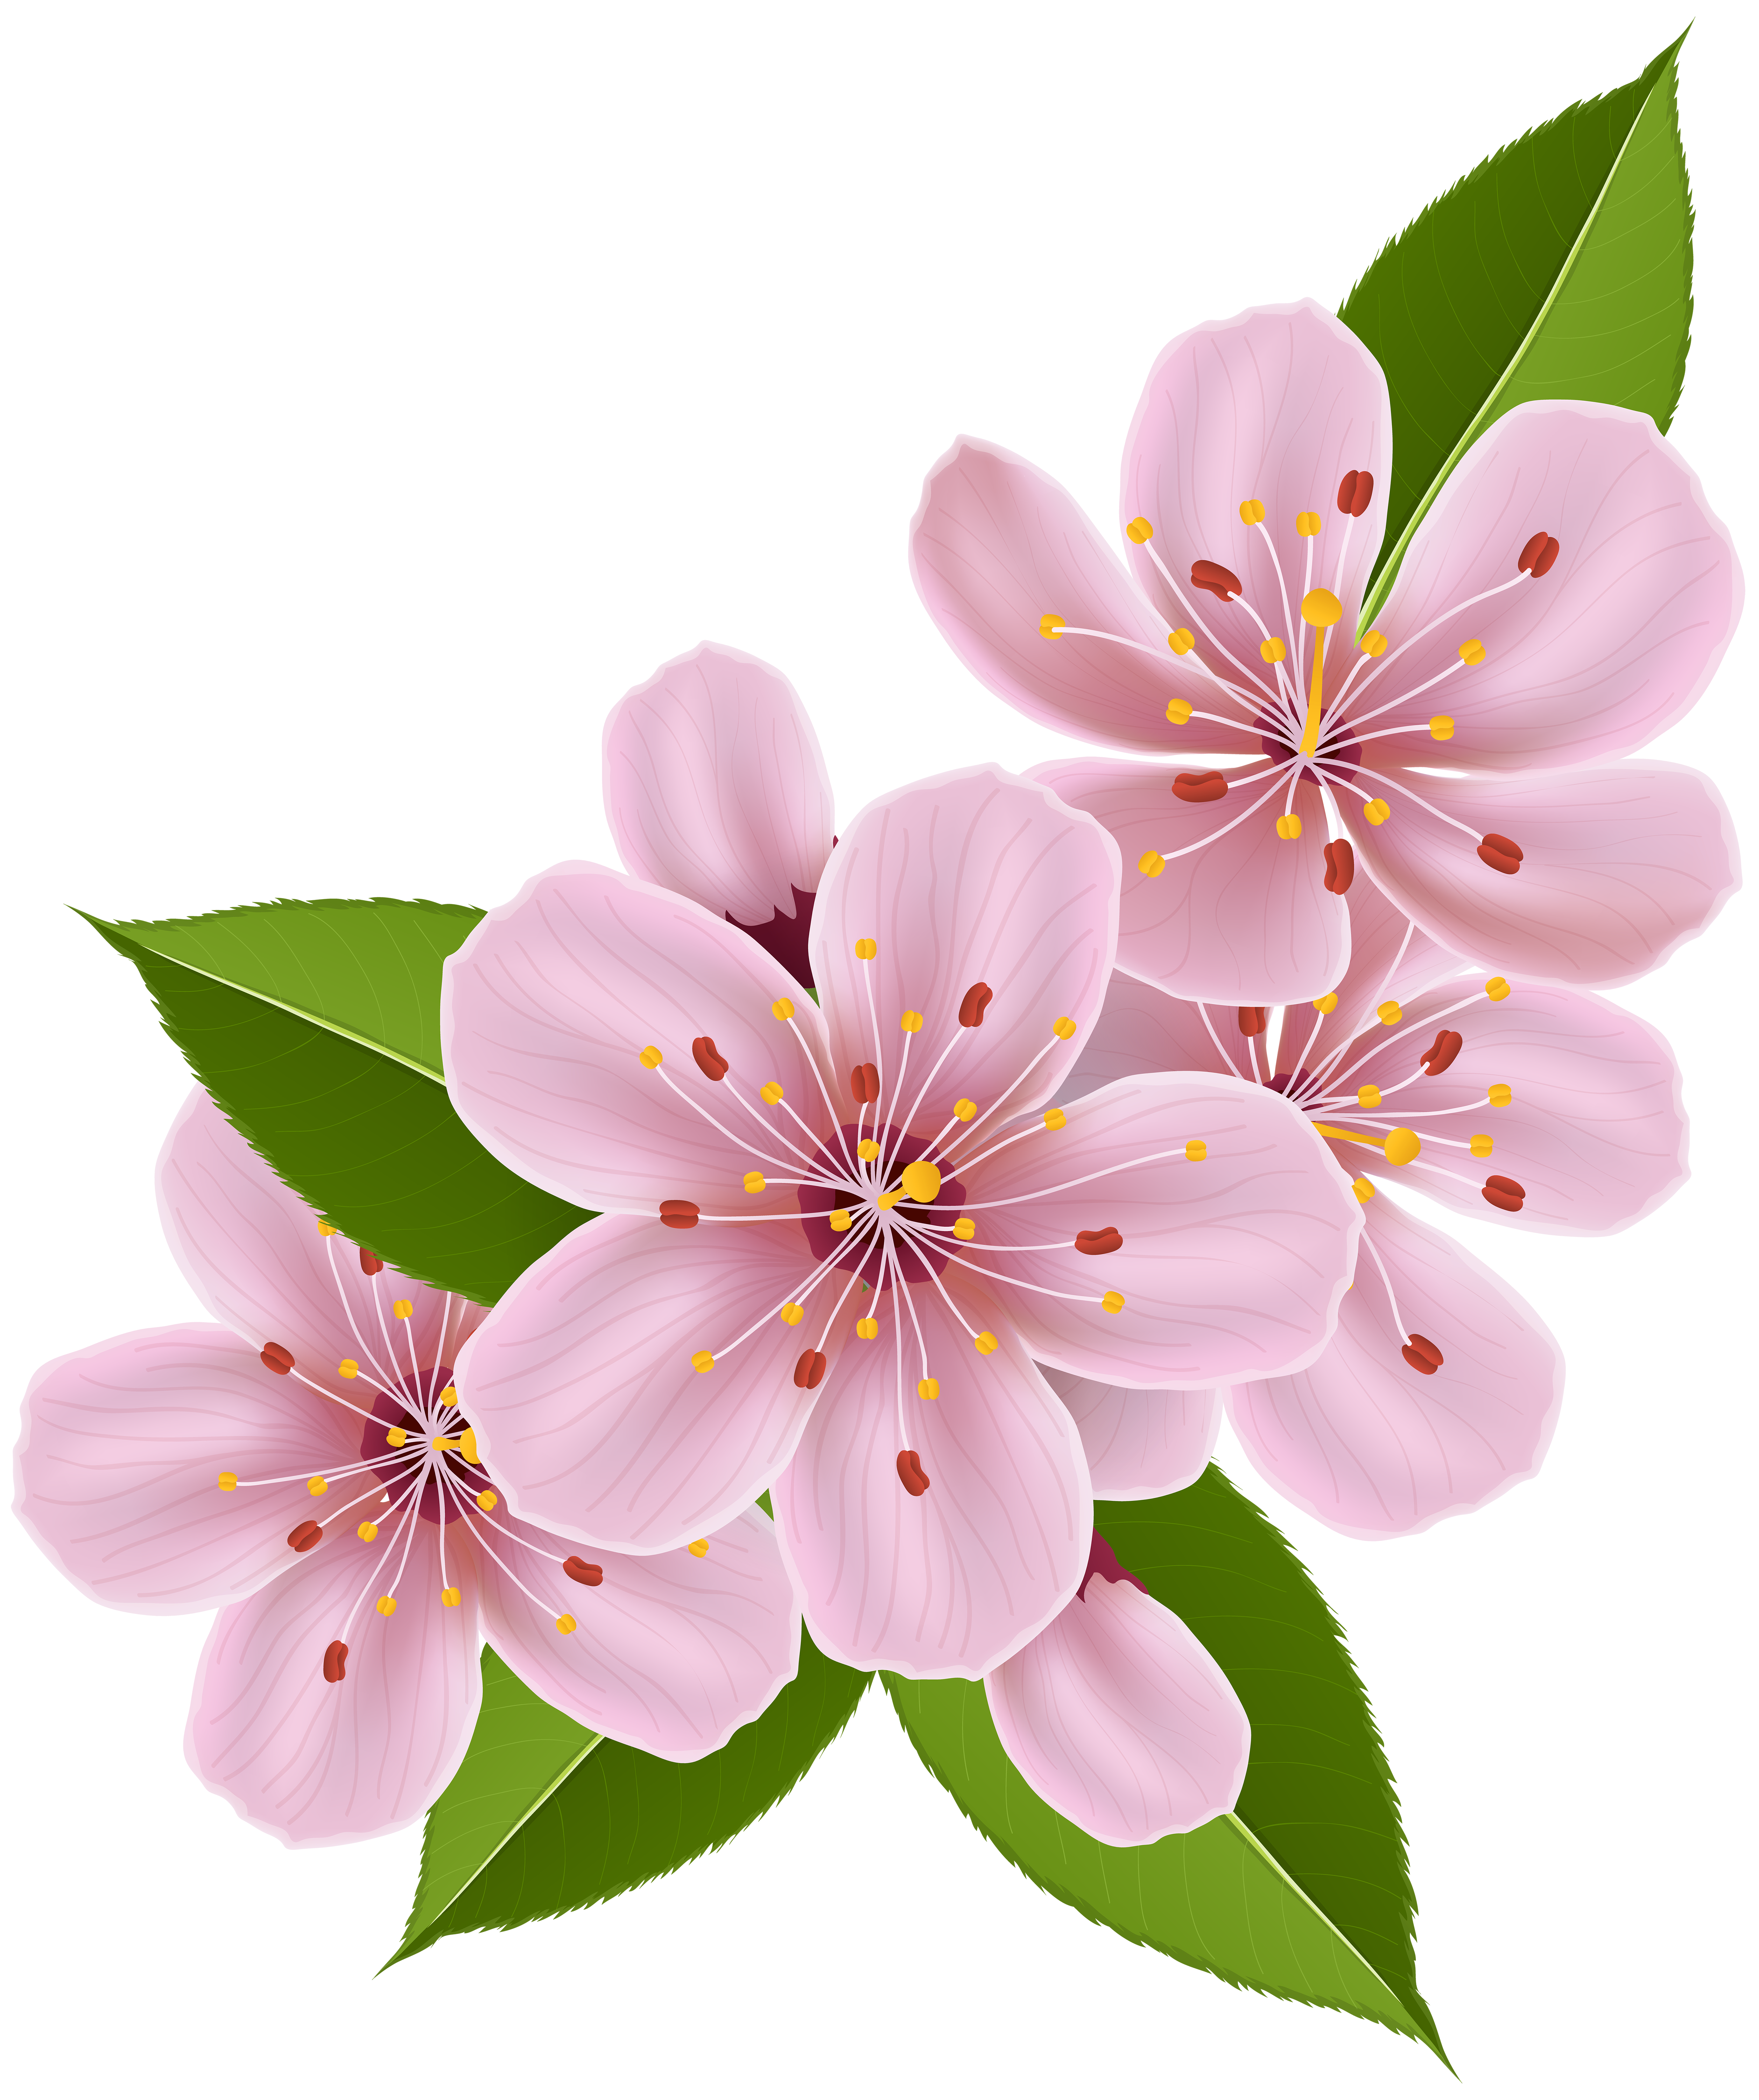 Cherry blossom png. Spring flowers clip art